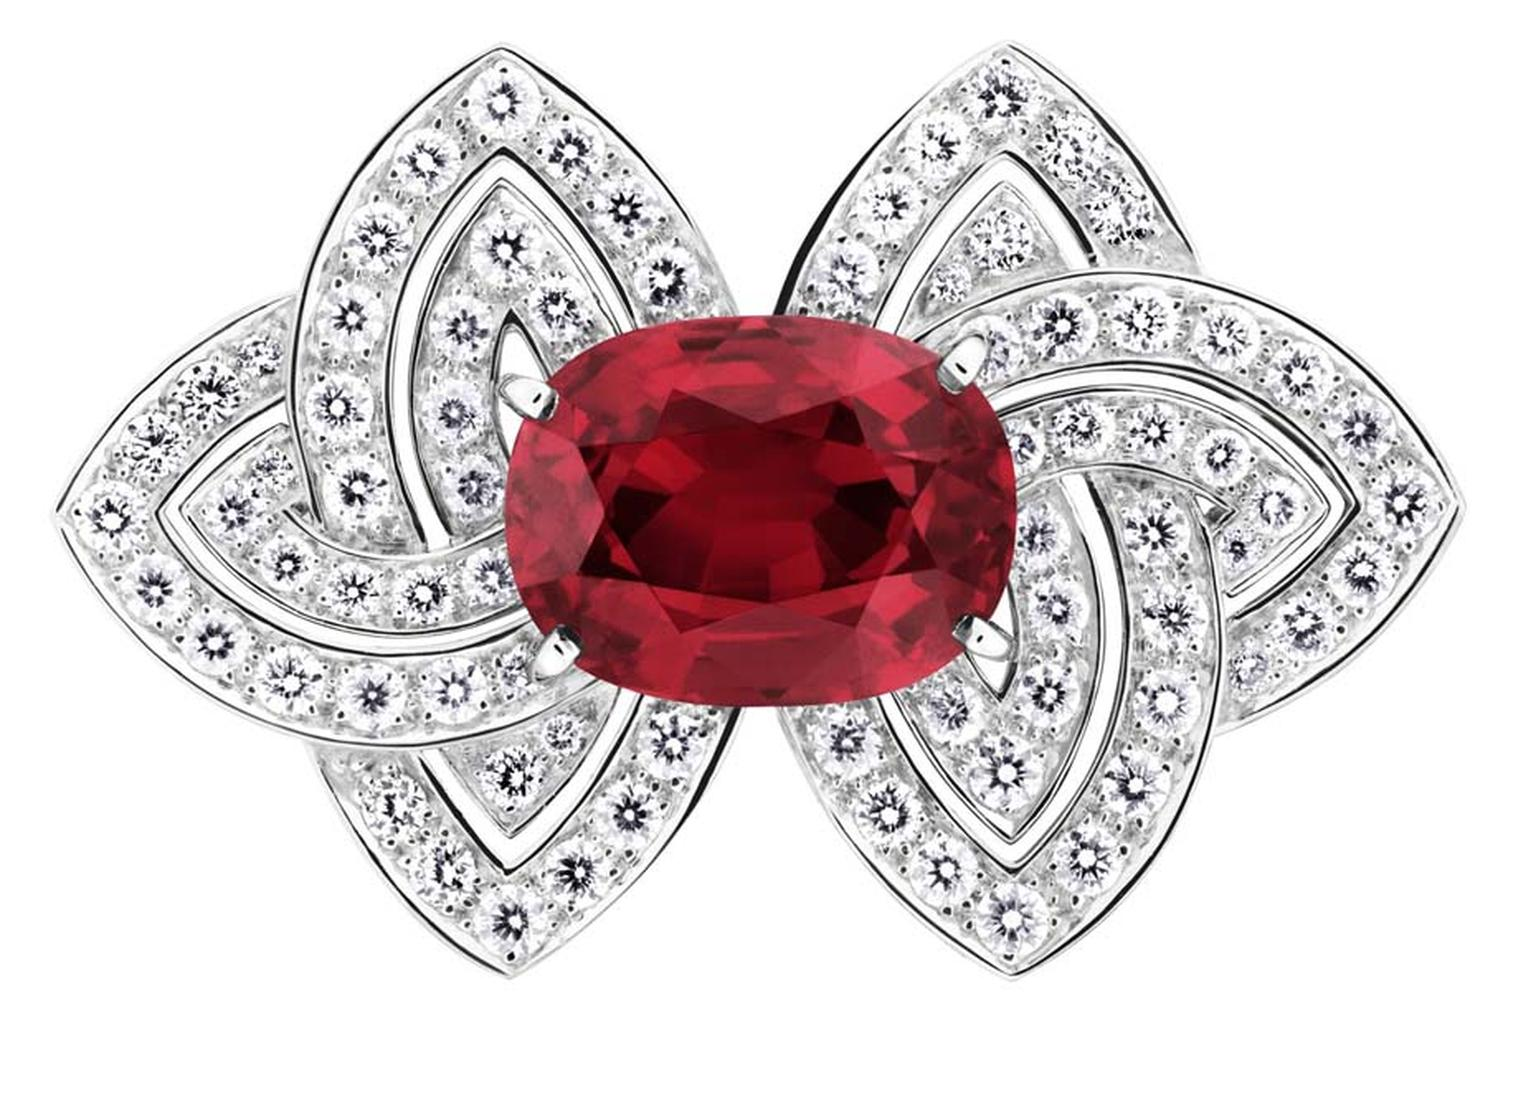 Louis Vuitton high jewellery ring featuring a centrally set African ruby, flanked by diamonds.